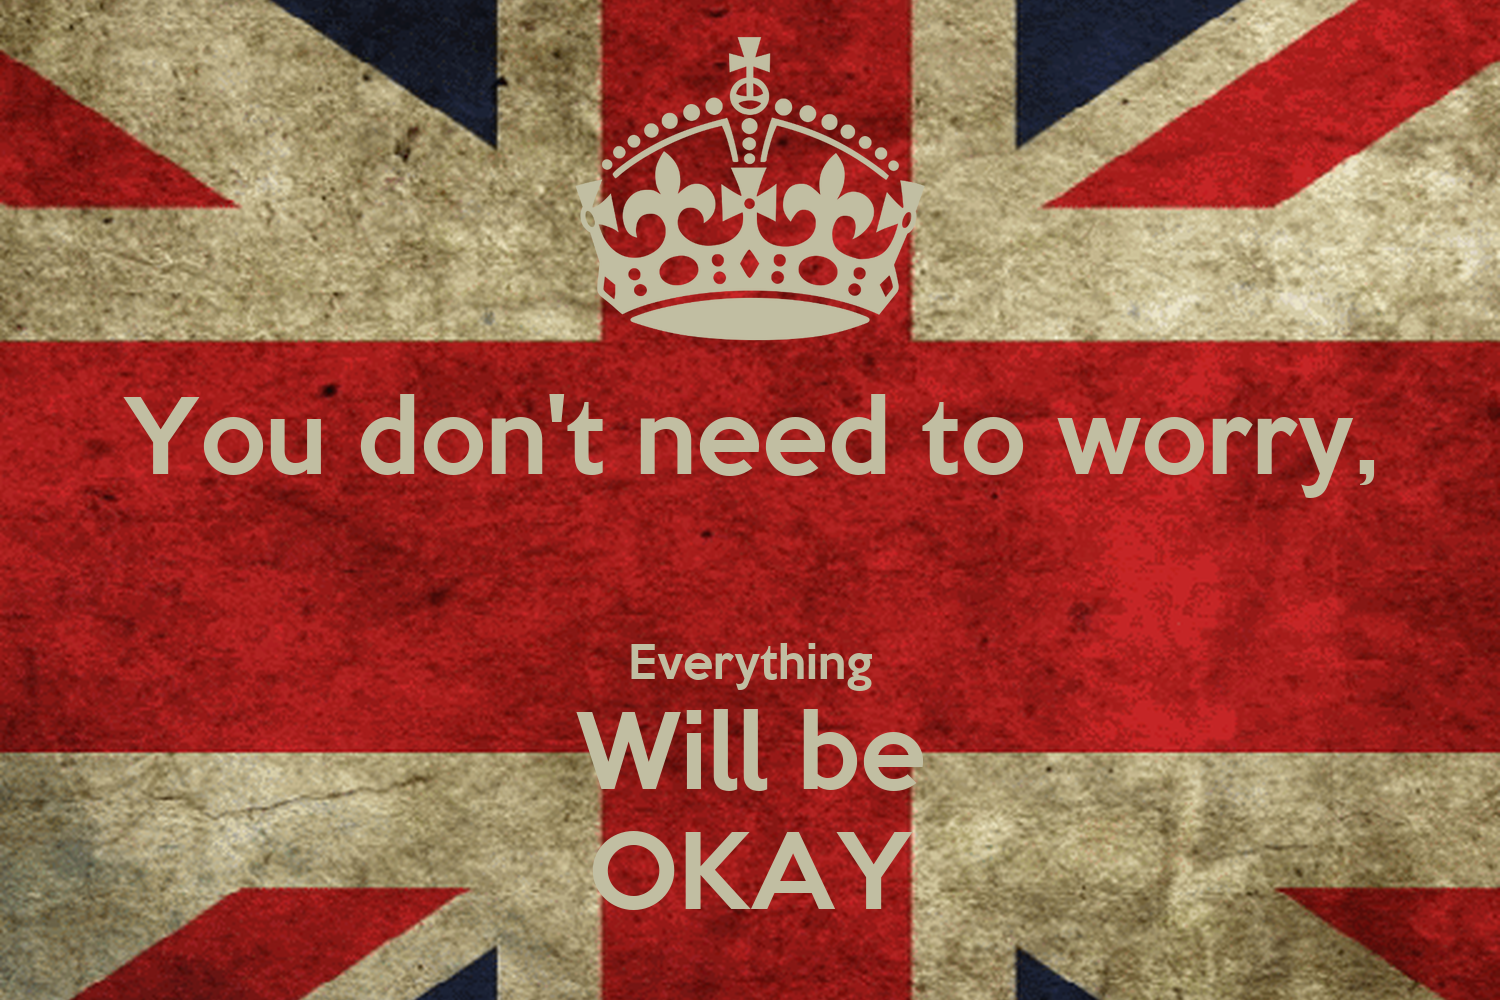 Don't Worry Everything Will be ok Poems You Don't Need to Worry